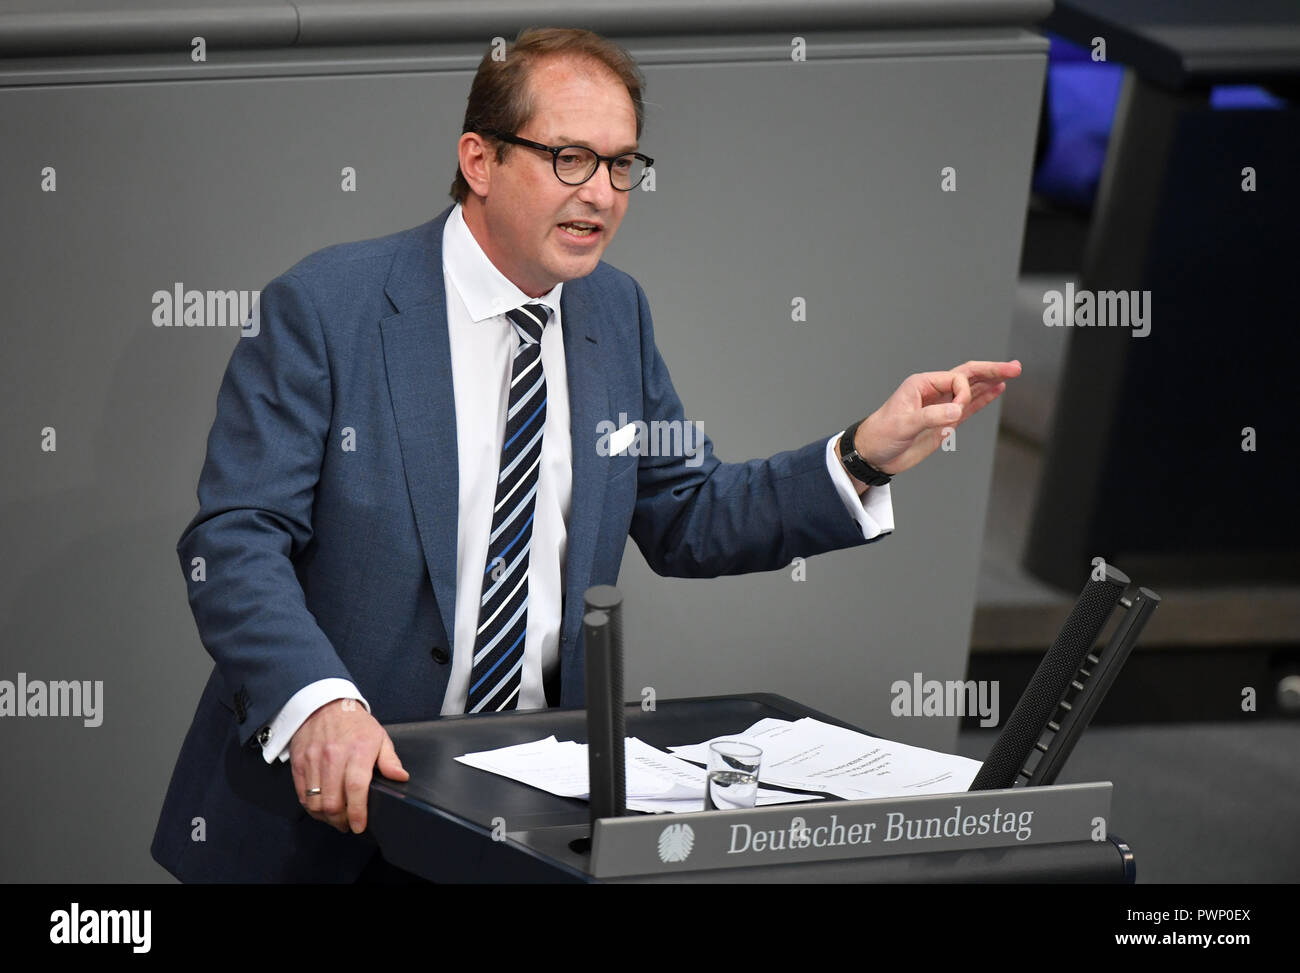 Berlin, Germany. 17th Oct, 2018. Alexander Dobrindt, chairman of the CSU regional group, speaks after the government declaration on the EU summit in Brussels of Chancellor Merkel (CDU) at the plenary session in the German Bundestag. The 57th session of the 19th legislature will focus on European policy. Photo: Bernd Von Jutrczenka/dpa Credit: dpa picture alliance/Alamy Live News - Stock Image